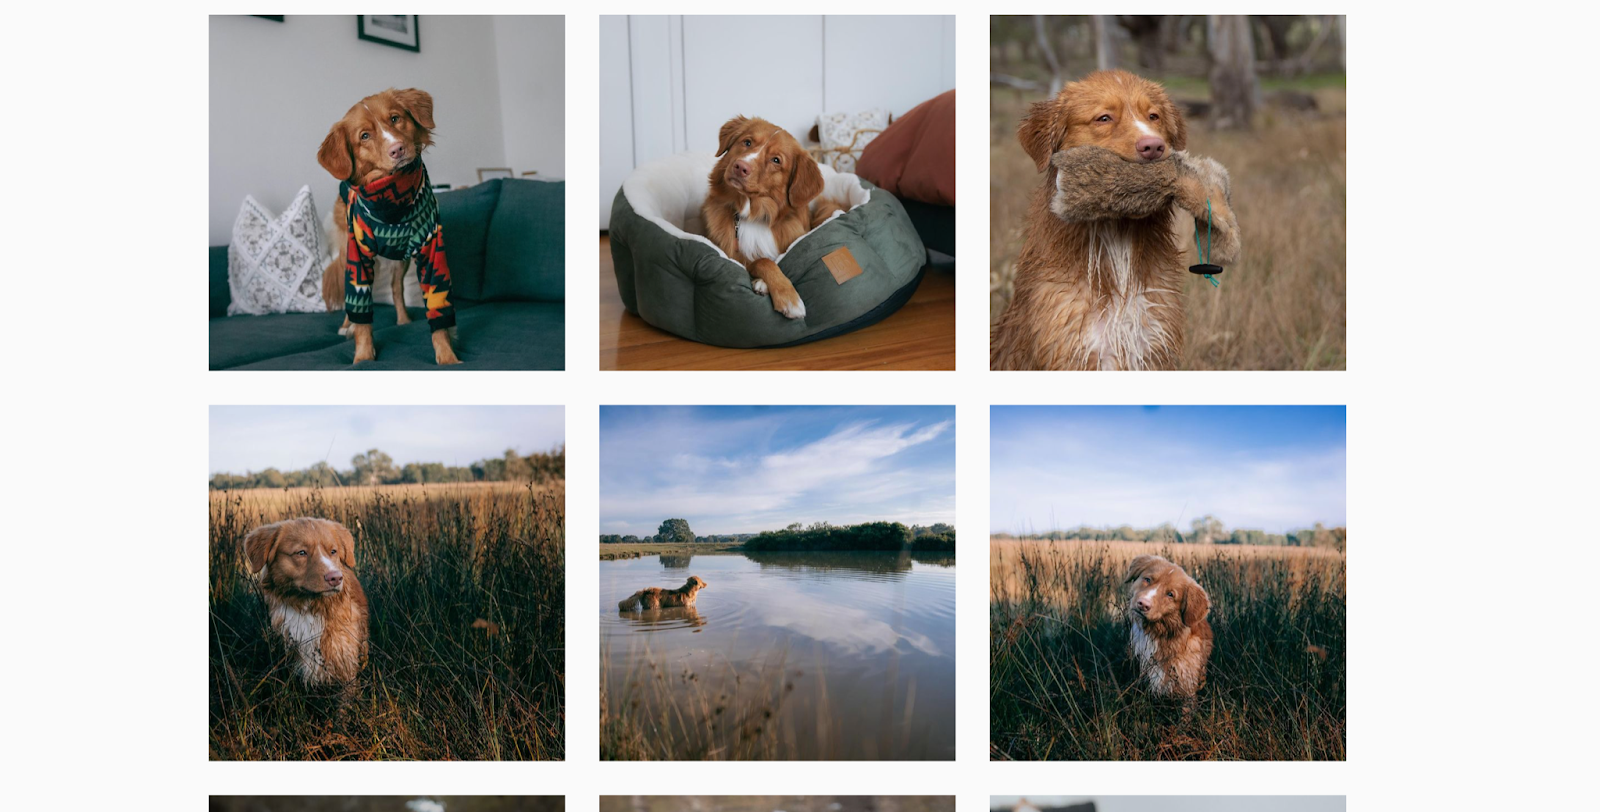 employ themes for dog photos